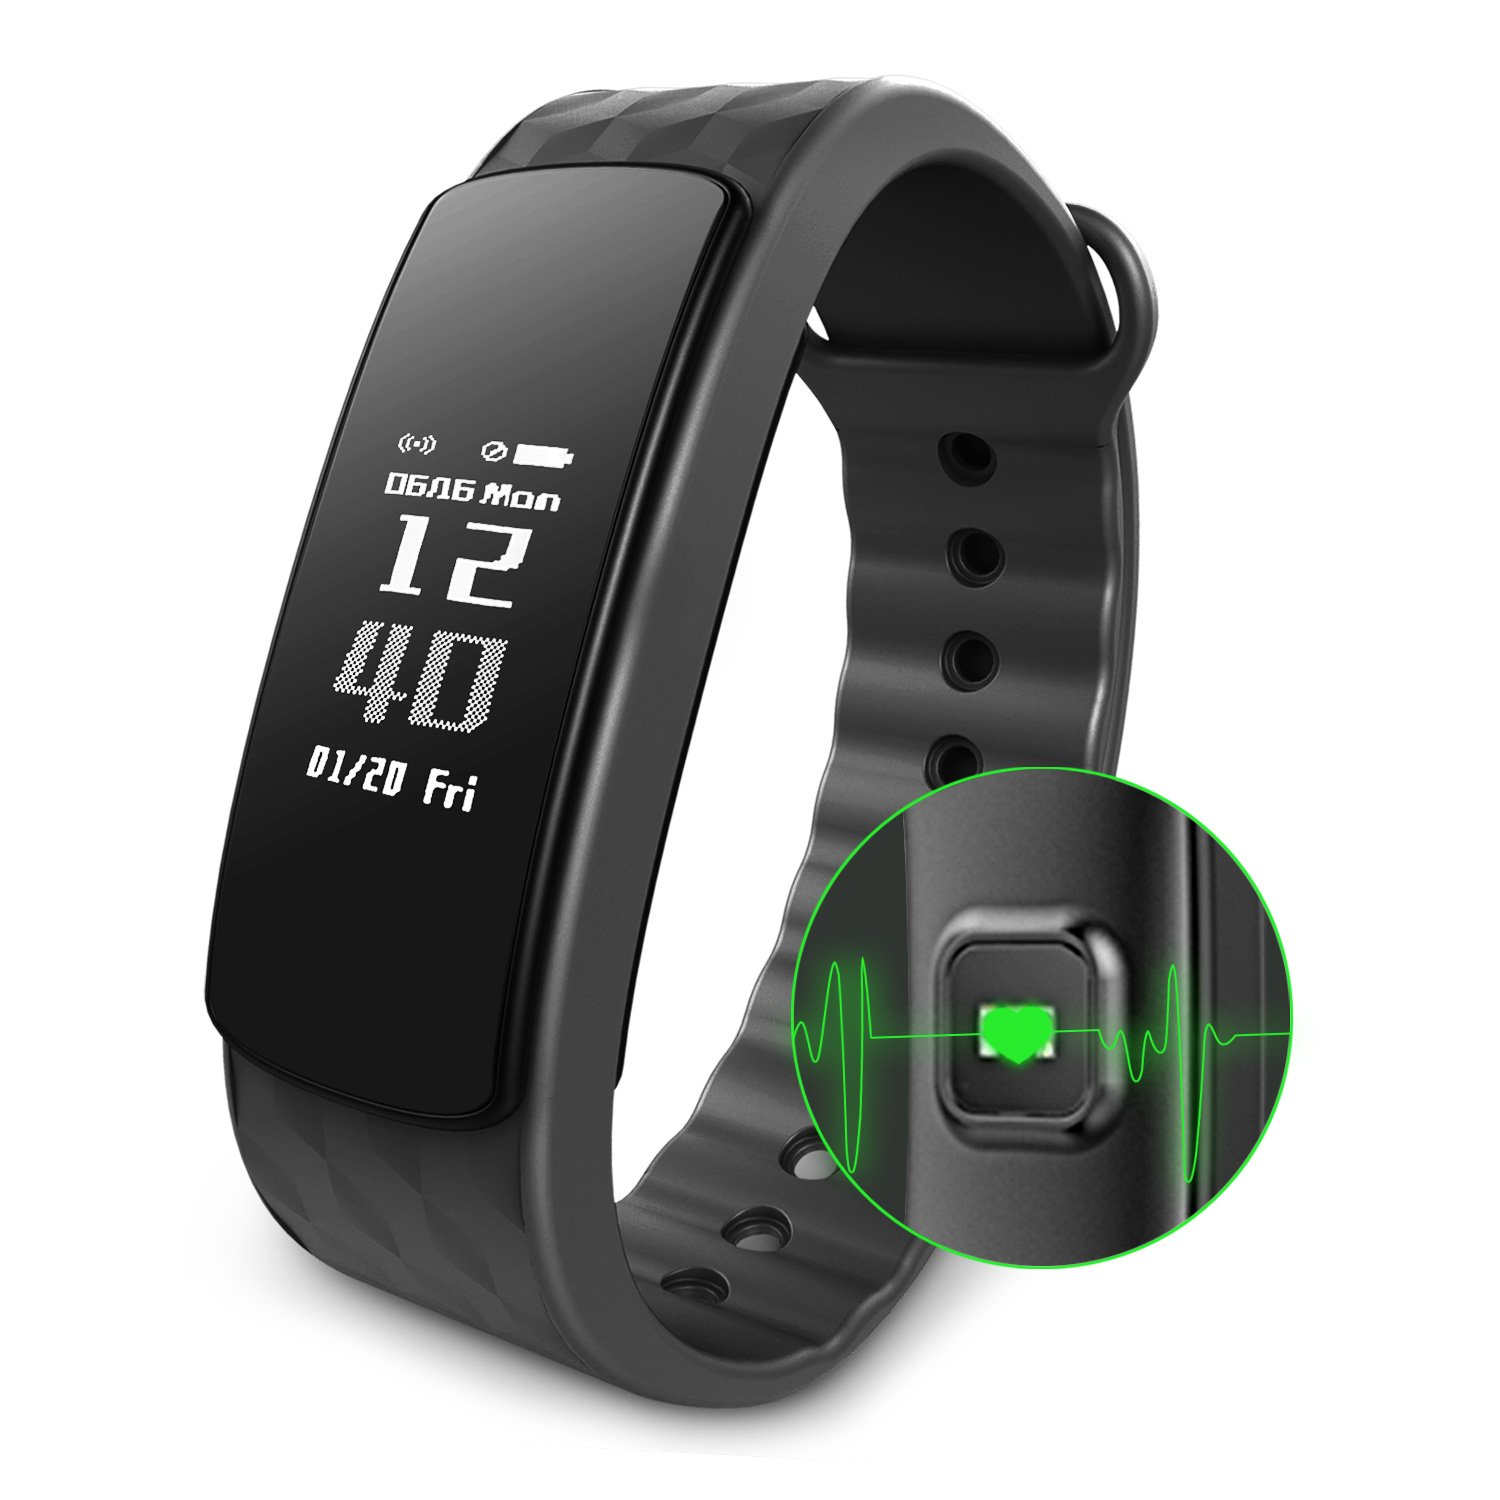 Fitness Activity Tracker, Smart Watch Band Heart Rate Monitor Wireless Waterproof IP67 Bracelet HR Wristband Pedometer Track Steps Sleep for IOS & Android Smartphone